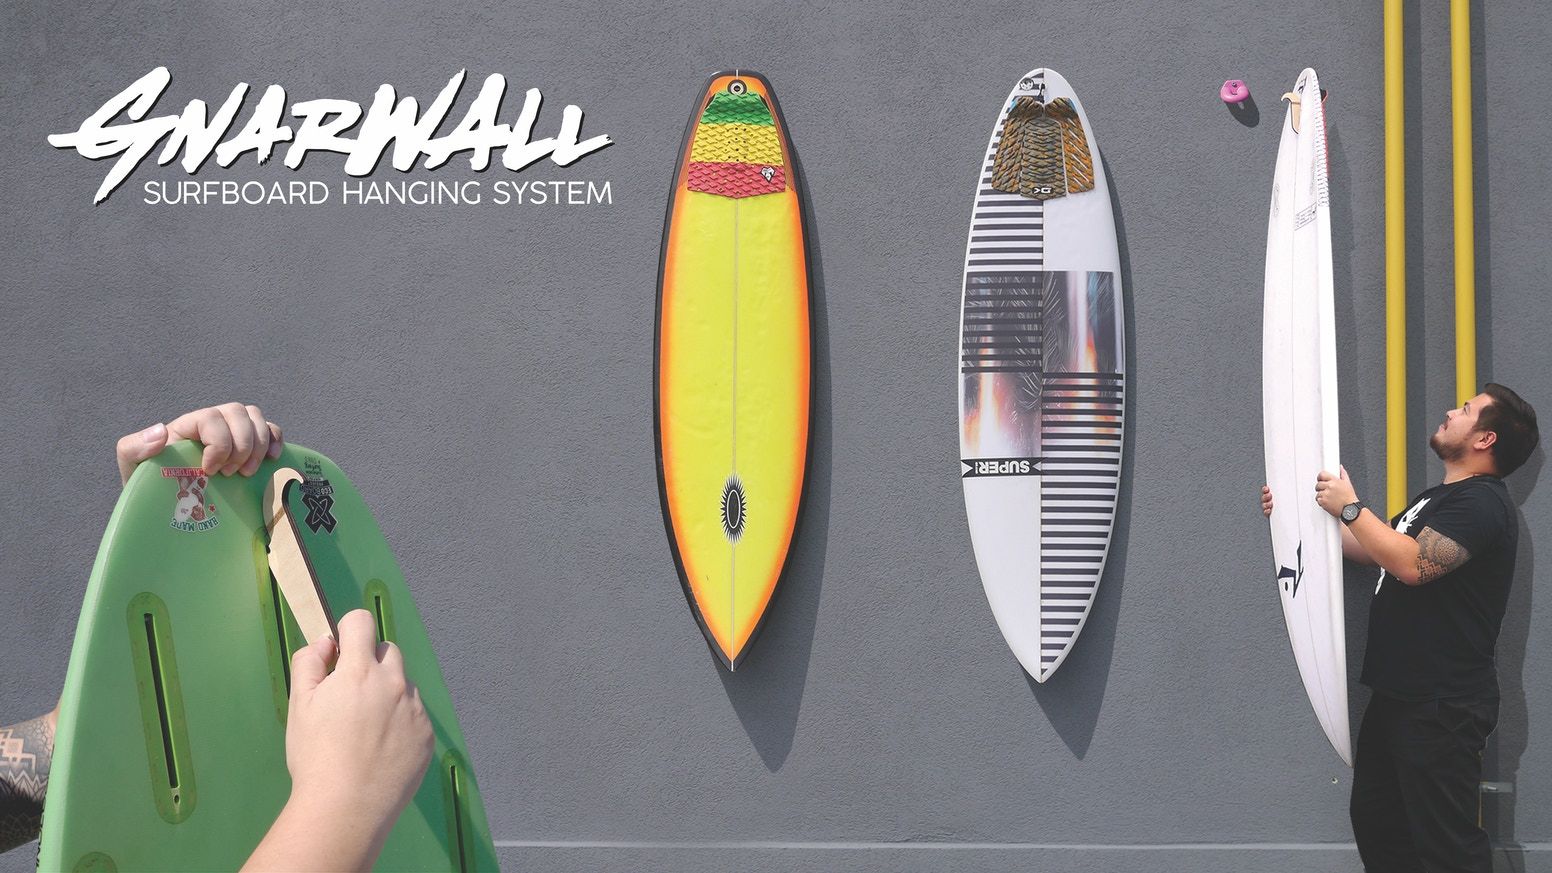 A sustainable surfboard wall hanging system that makes it easy to store and display your gnarly boards. Use discount code KICKSTART at the link below to save 15% on your whole order!!!